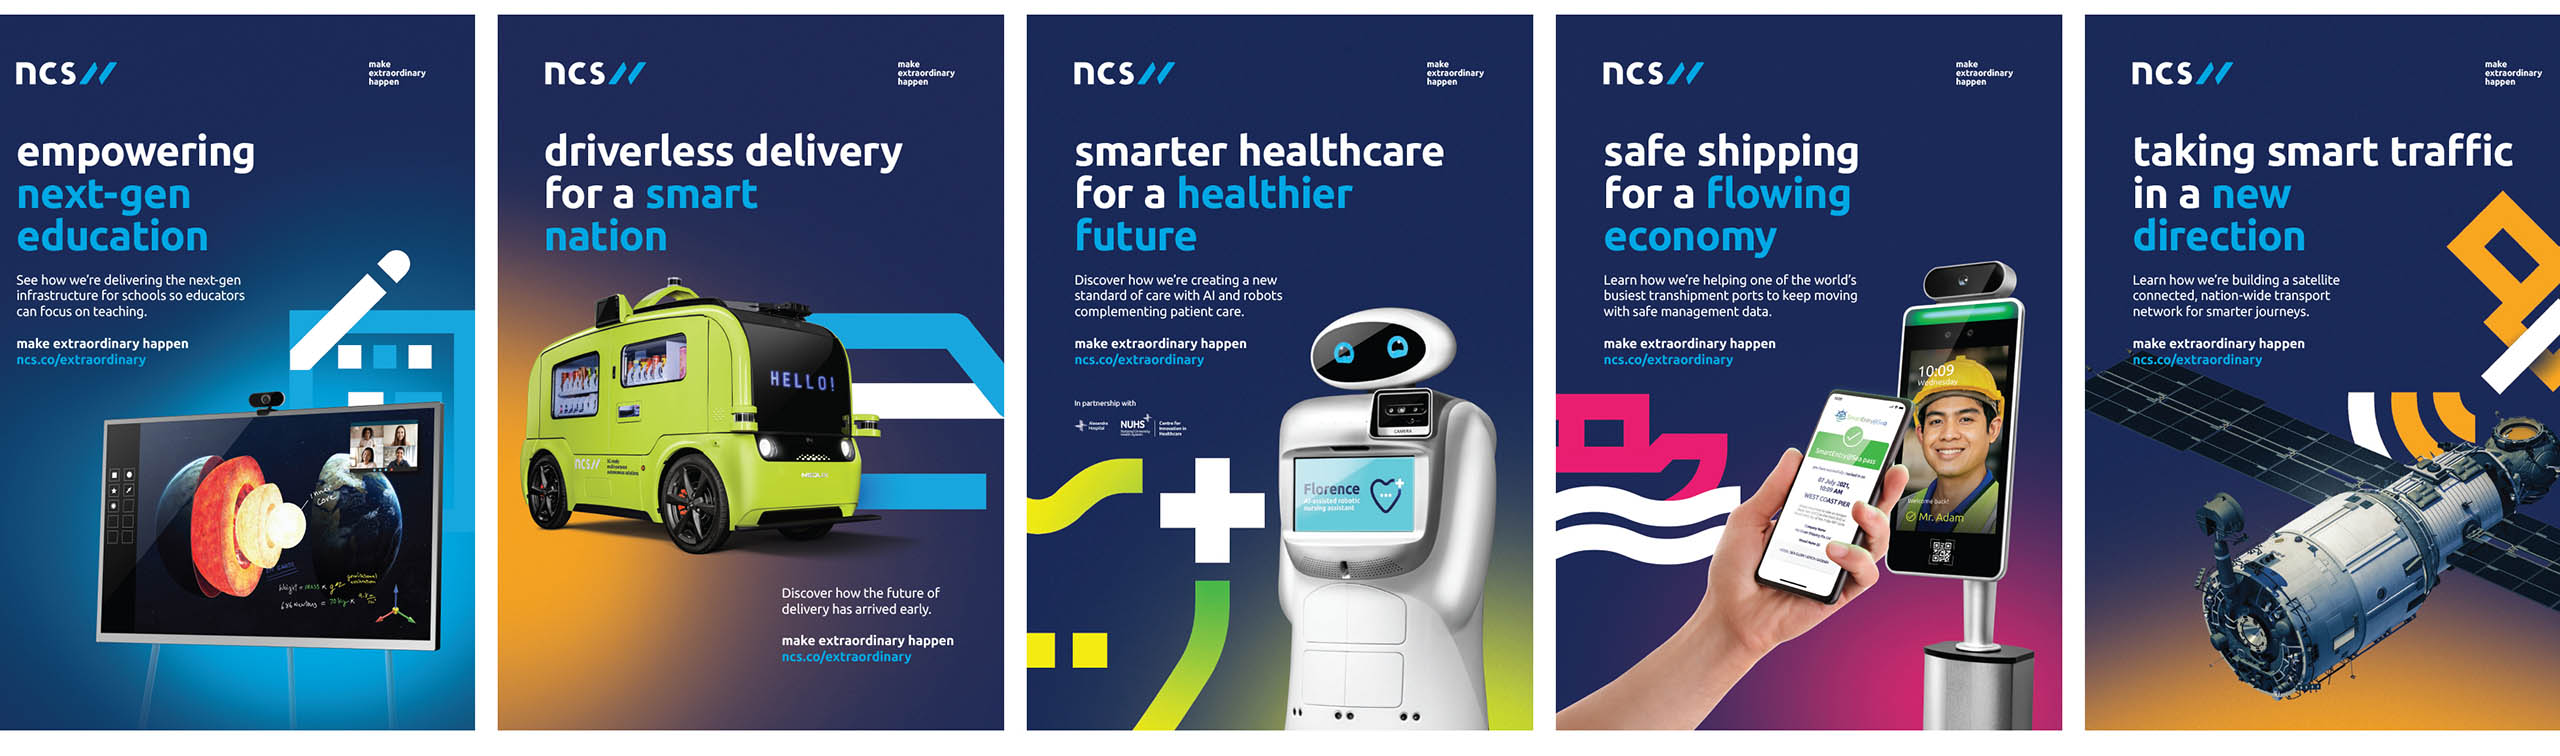 NCS launches brand transformation campaign in APAC with dentsu as lead agency partner